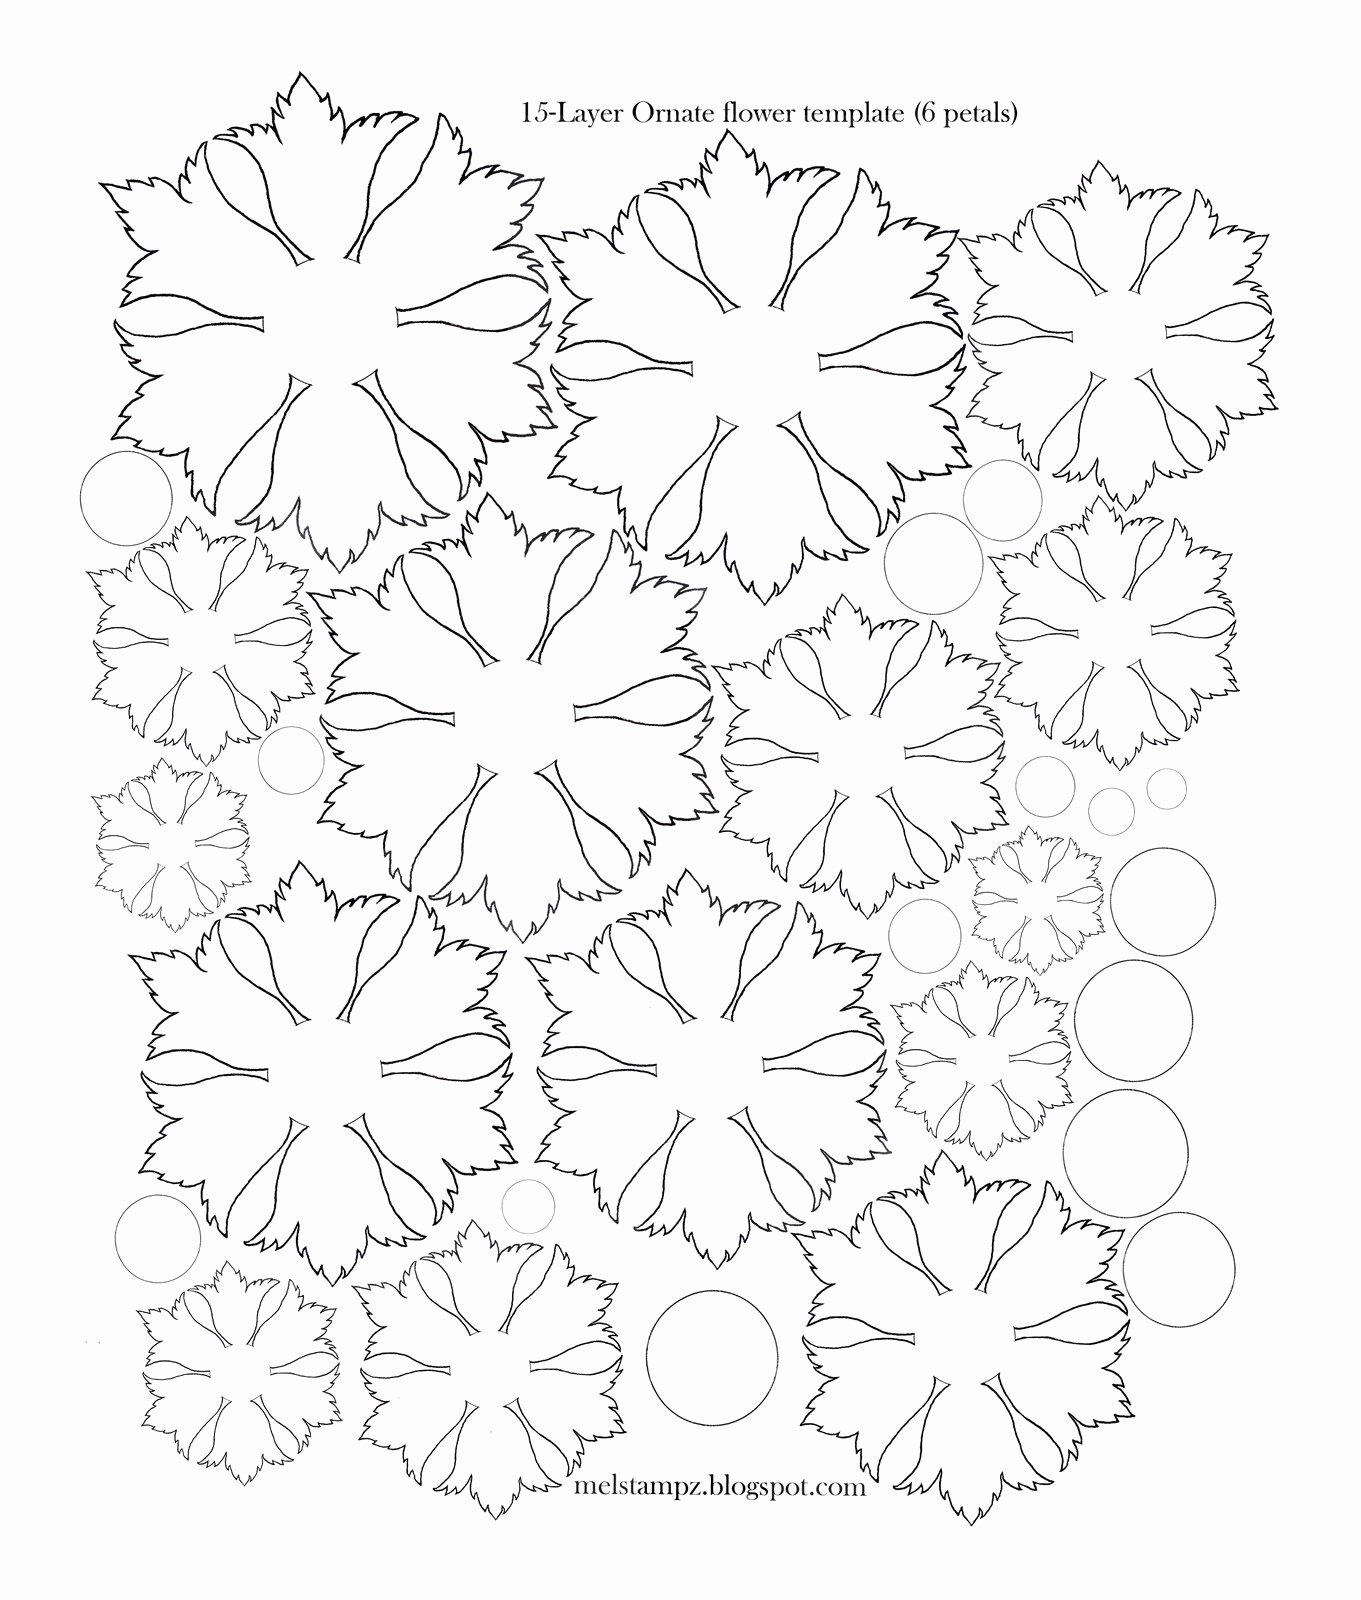 Template for Paper Flowers Awesome Mel Stampz 6 Petal ornate Flower Template